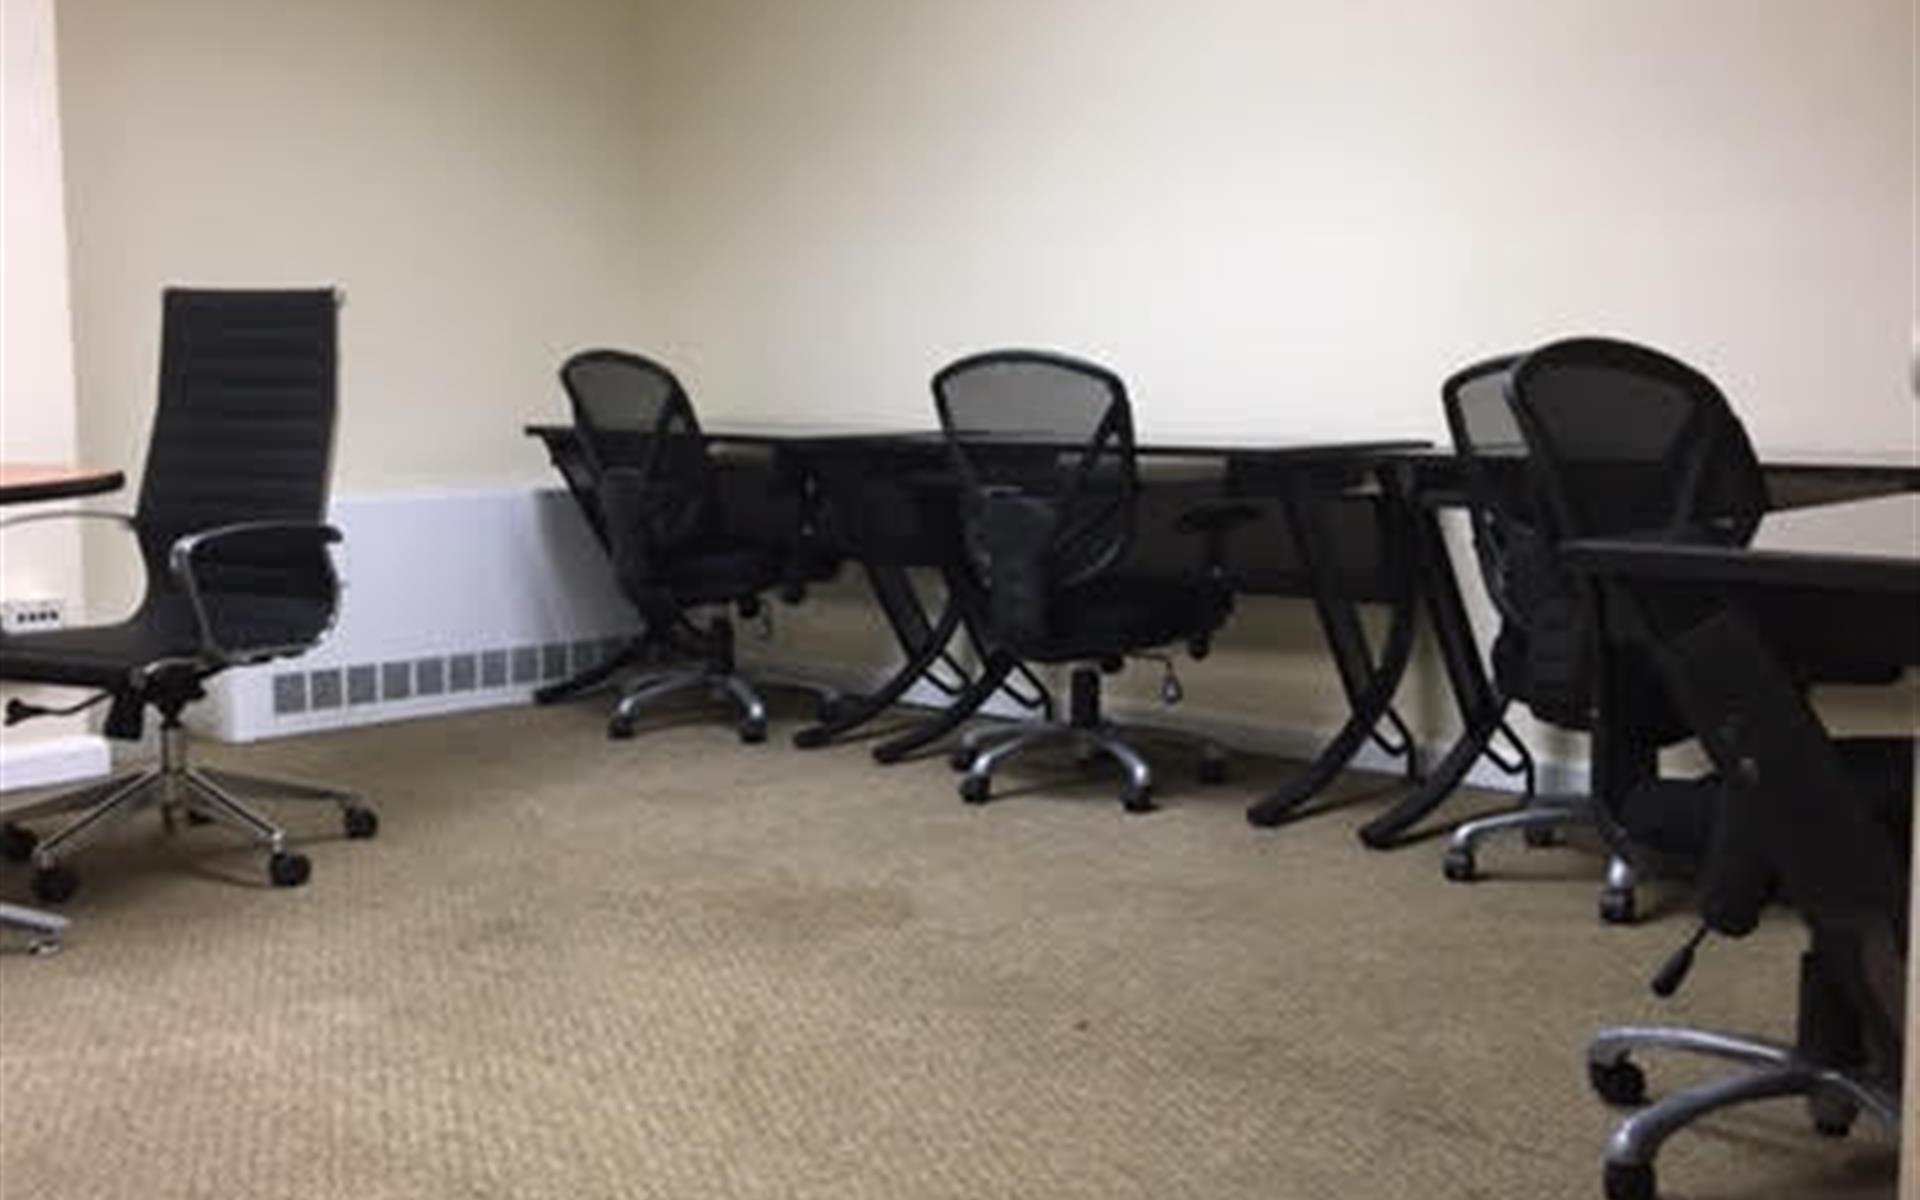 Jay Suites Penn Station - 8-10 Person Office- All Inclusive Price